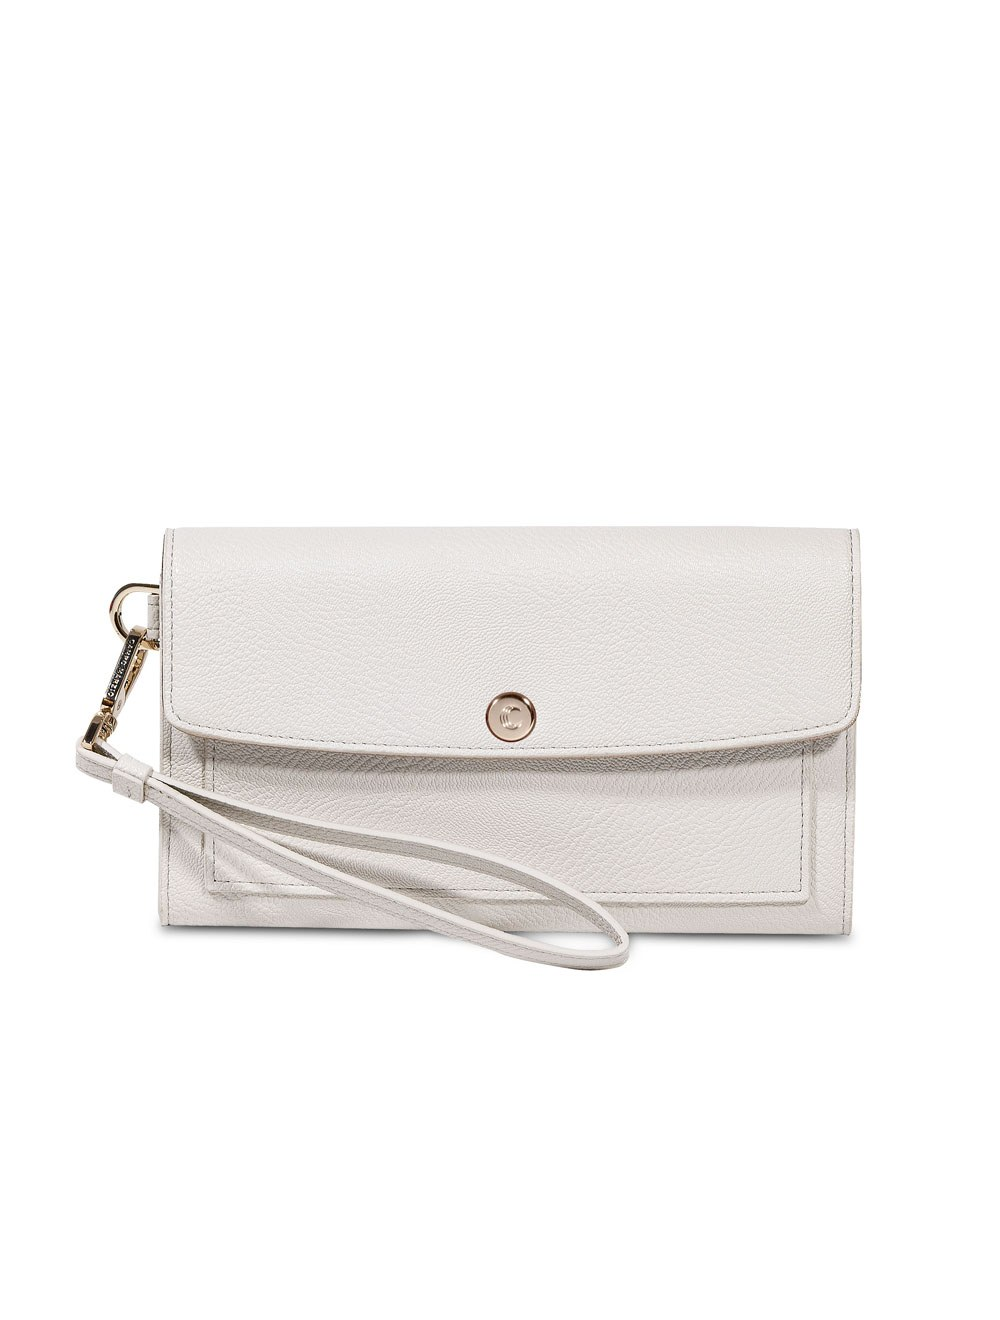 Wallet With Wristlet - Off White